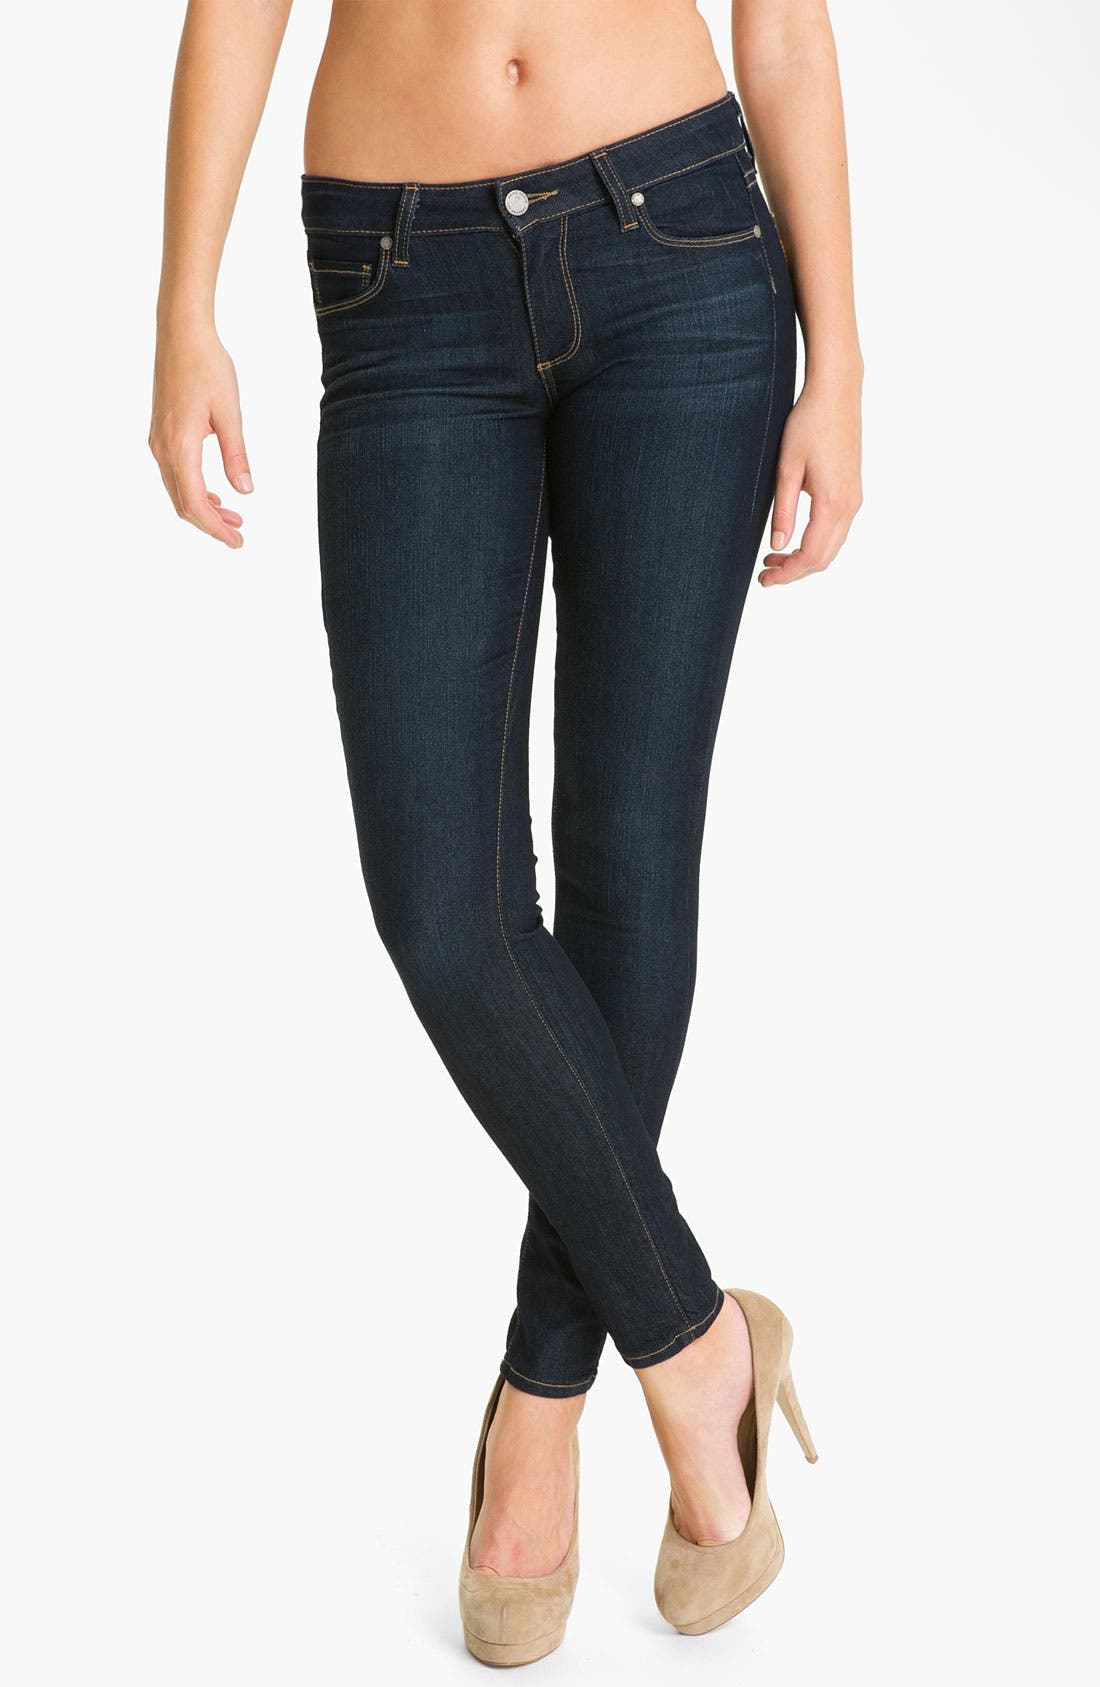 Alternate Image 1 Selected - Paige Denim 'Verdugo' Stretch Skinny Jeans (Stream)